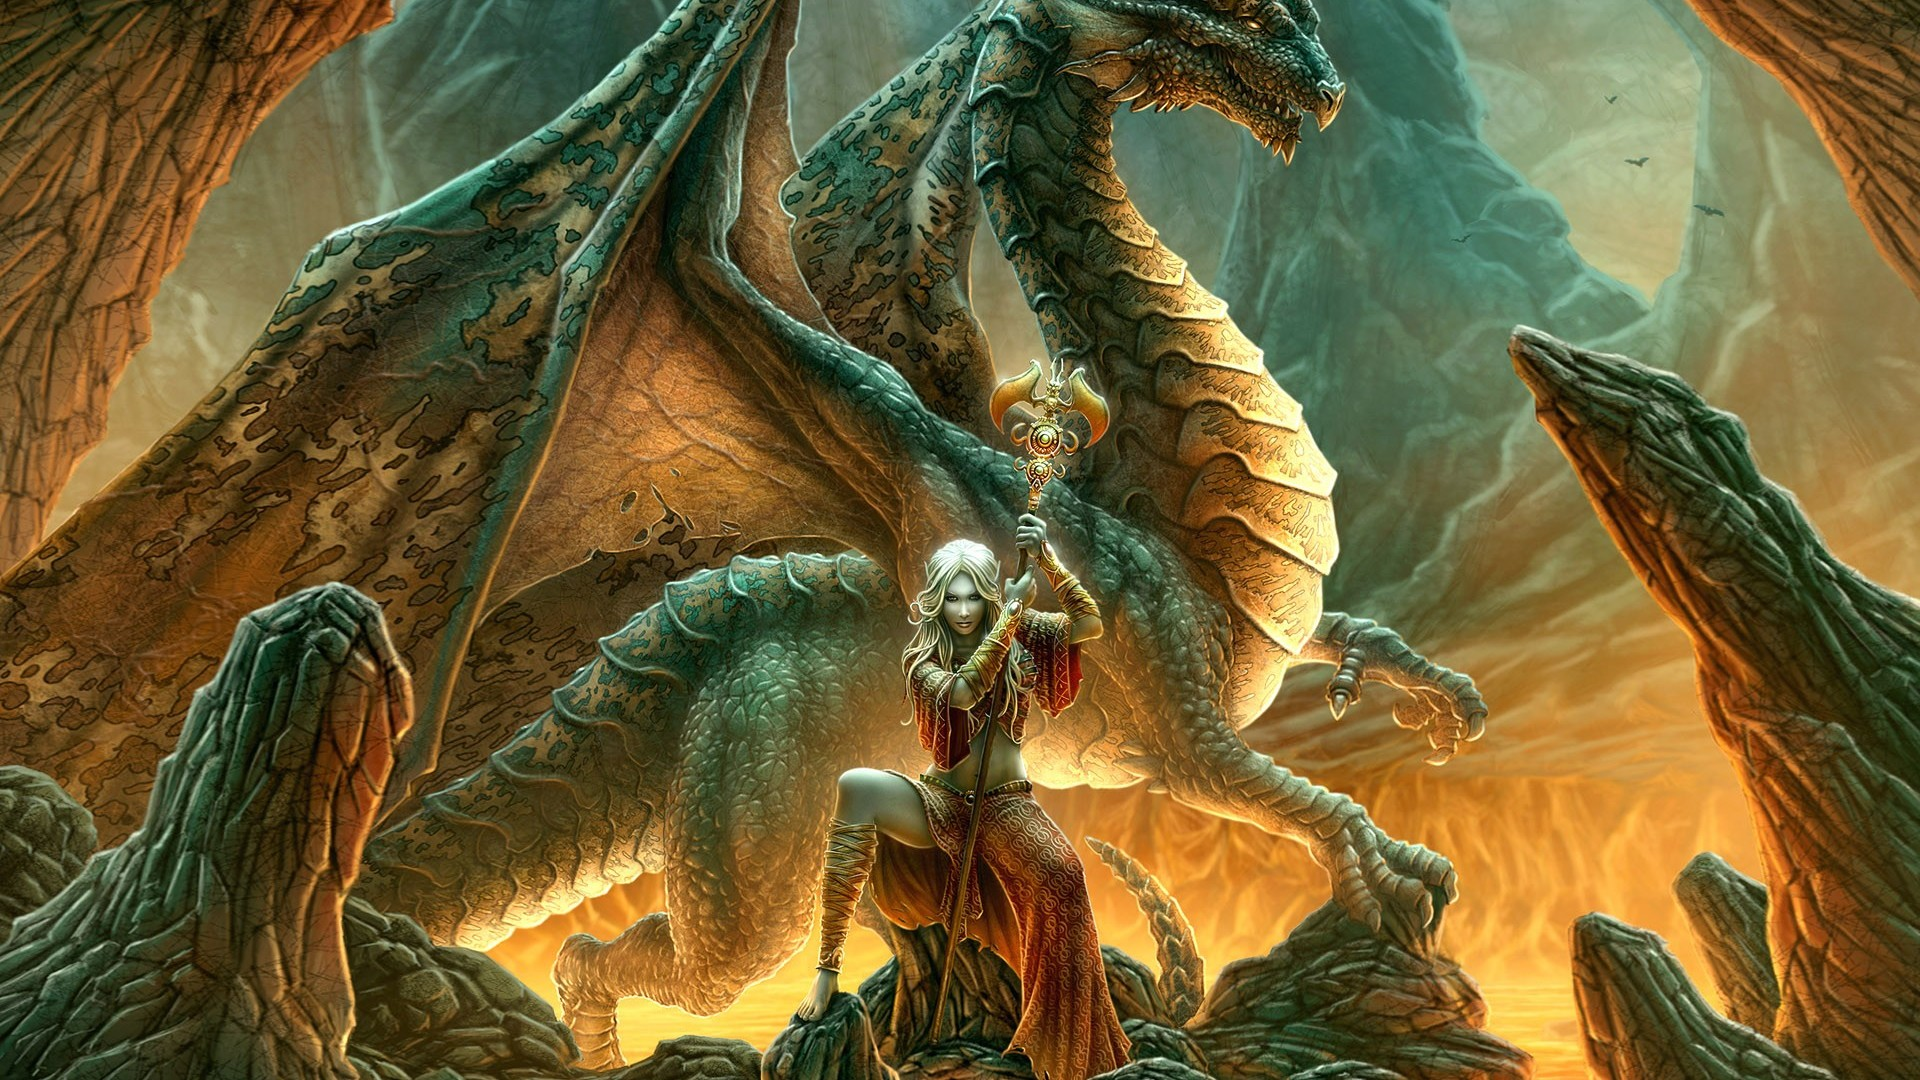 Warrior woman with her dragon